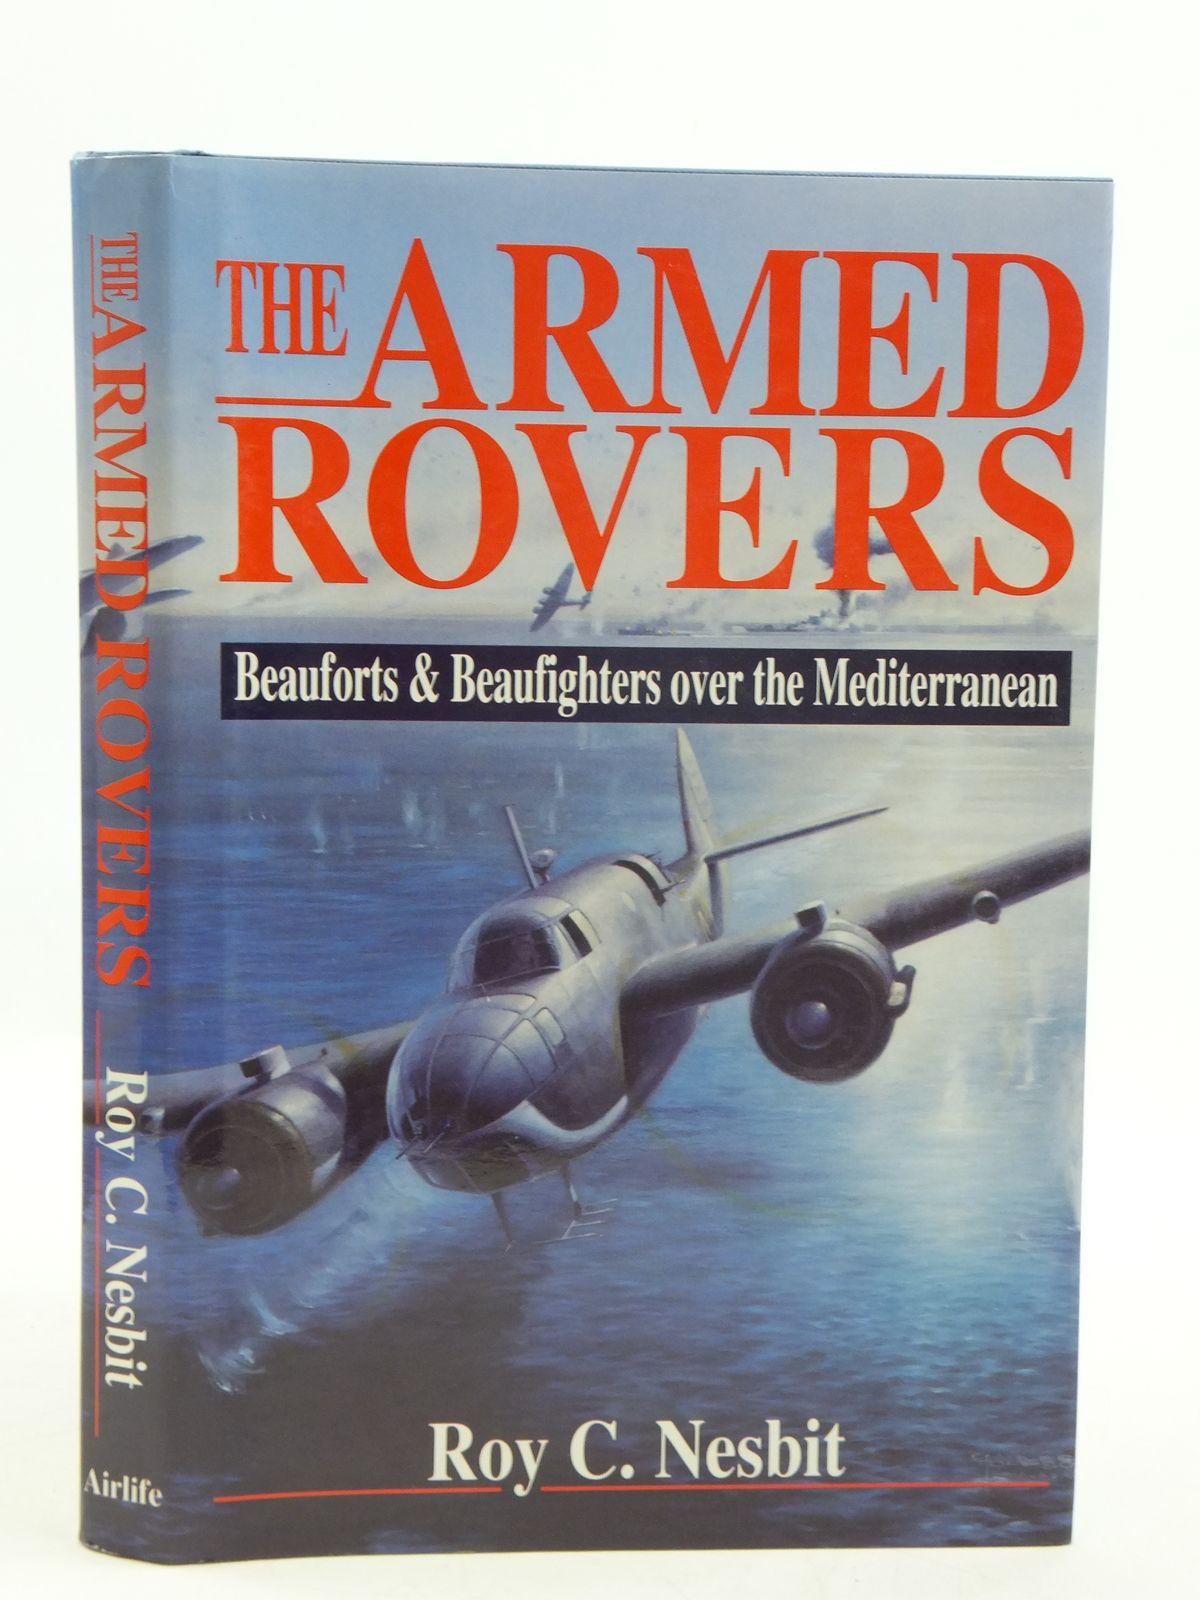 Photo of THE ARMED ROVERS BEAUFORTS & BEAUFIGHTERS OVER THE MEDITERRANEAN written by Nesbit, Roy Conyers published by Airlife (STOCK CODE: 2110899)  for sale by Stella & Rose's Books